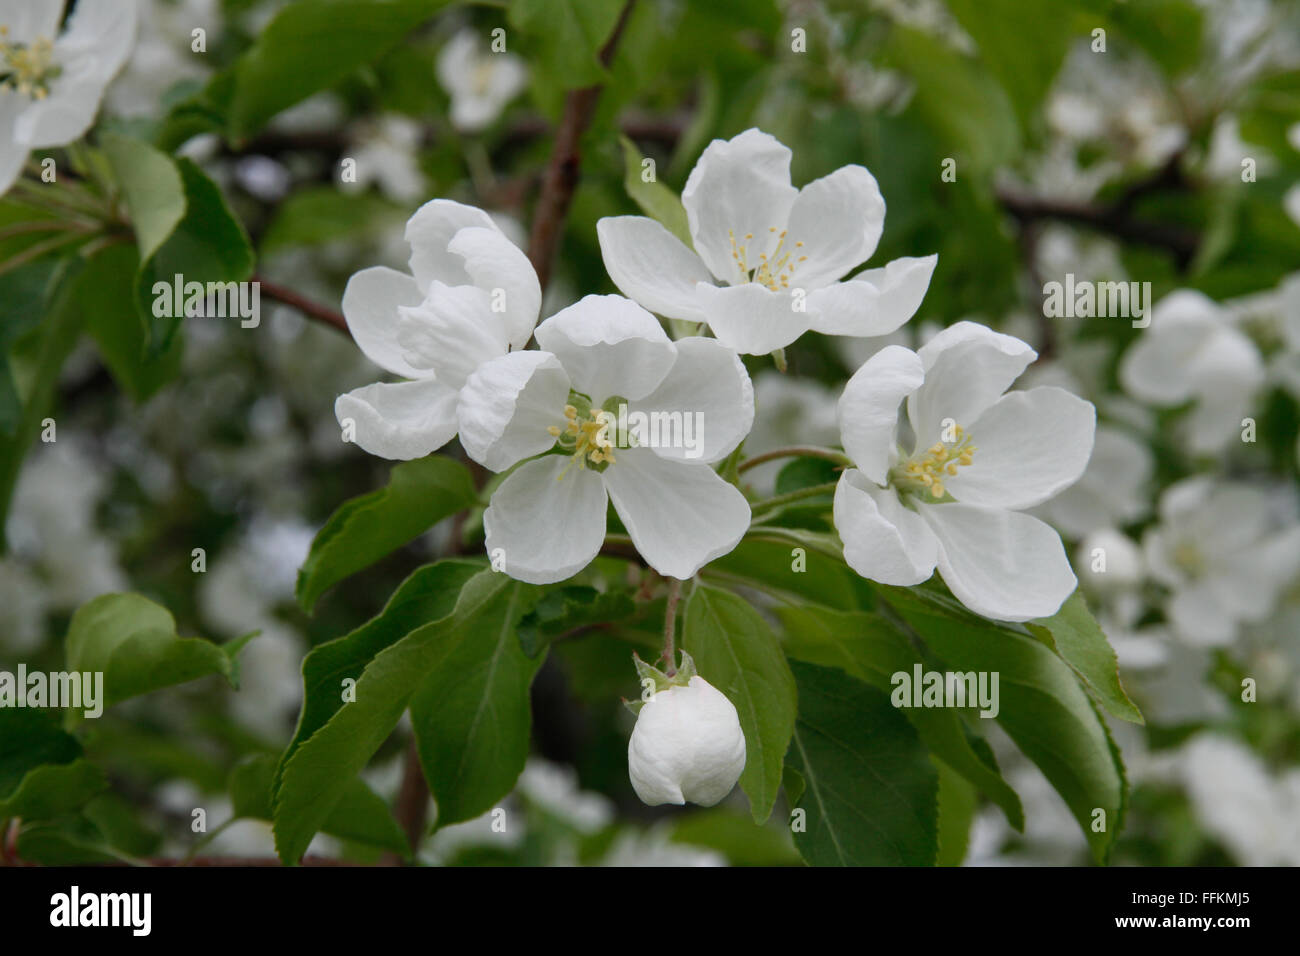 Close Up Of White Flowering Crabapple Blossoms Stock Photo 95704957